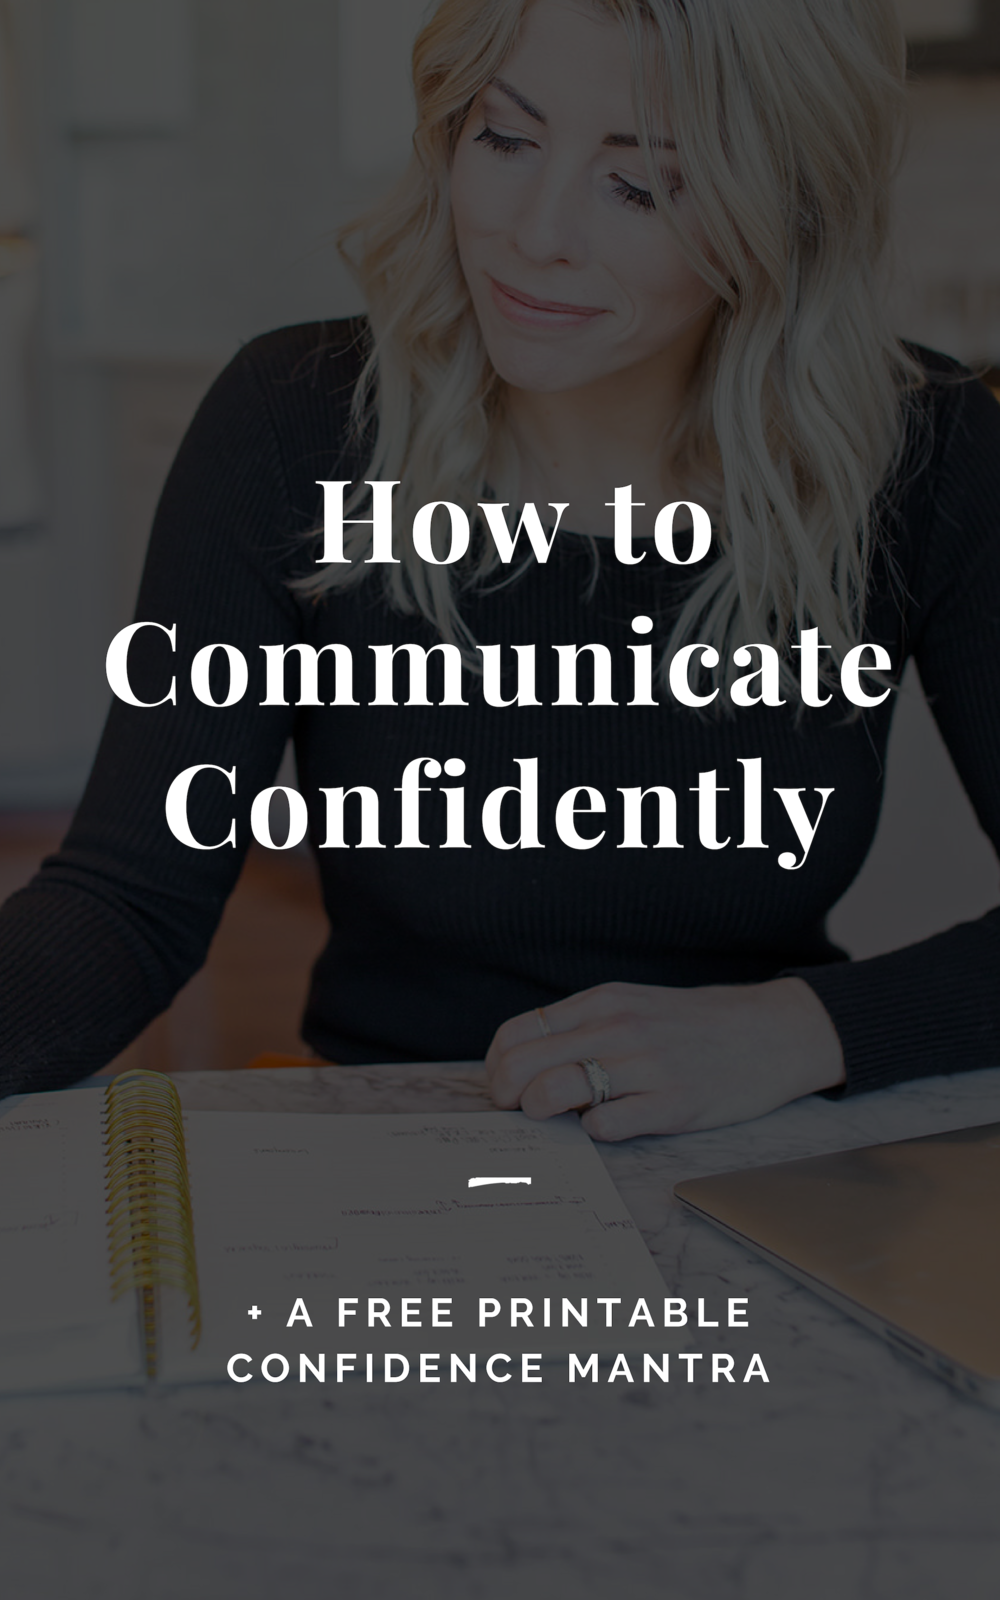 How to Communicate Confidently